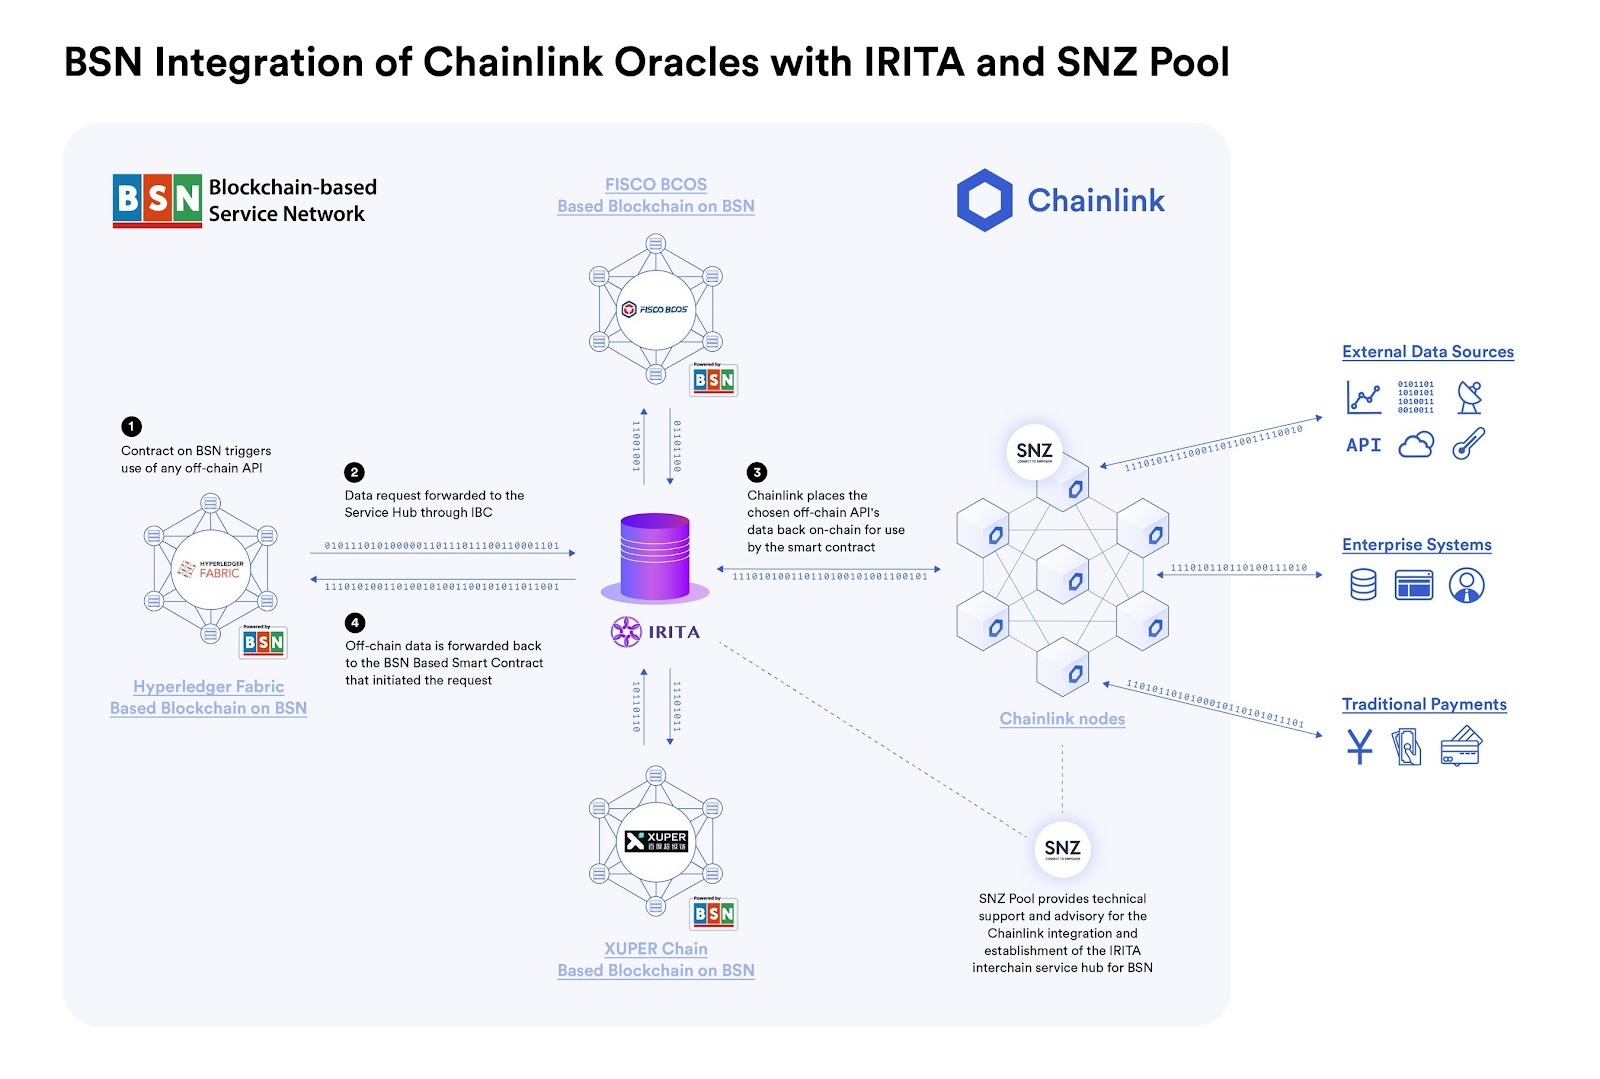 Illustration of BSN's integration of Chainlink oracles